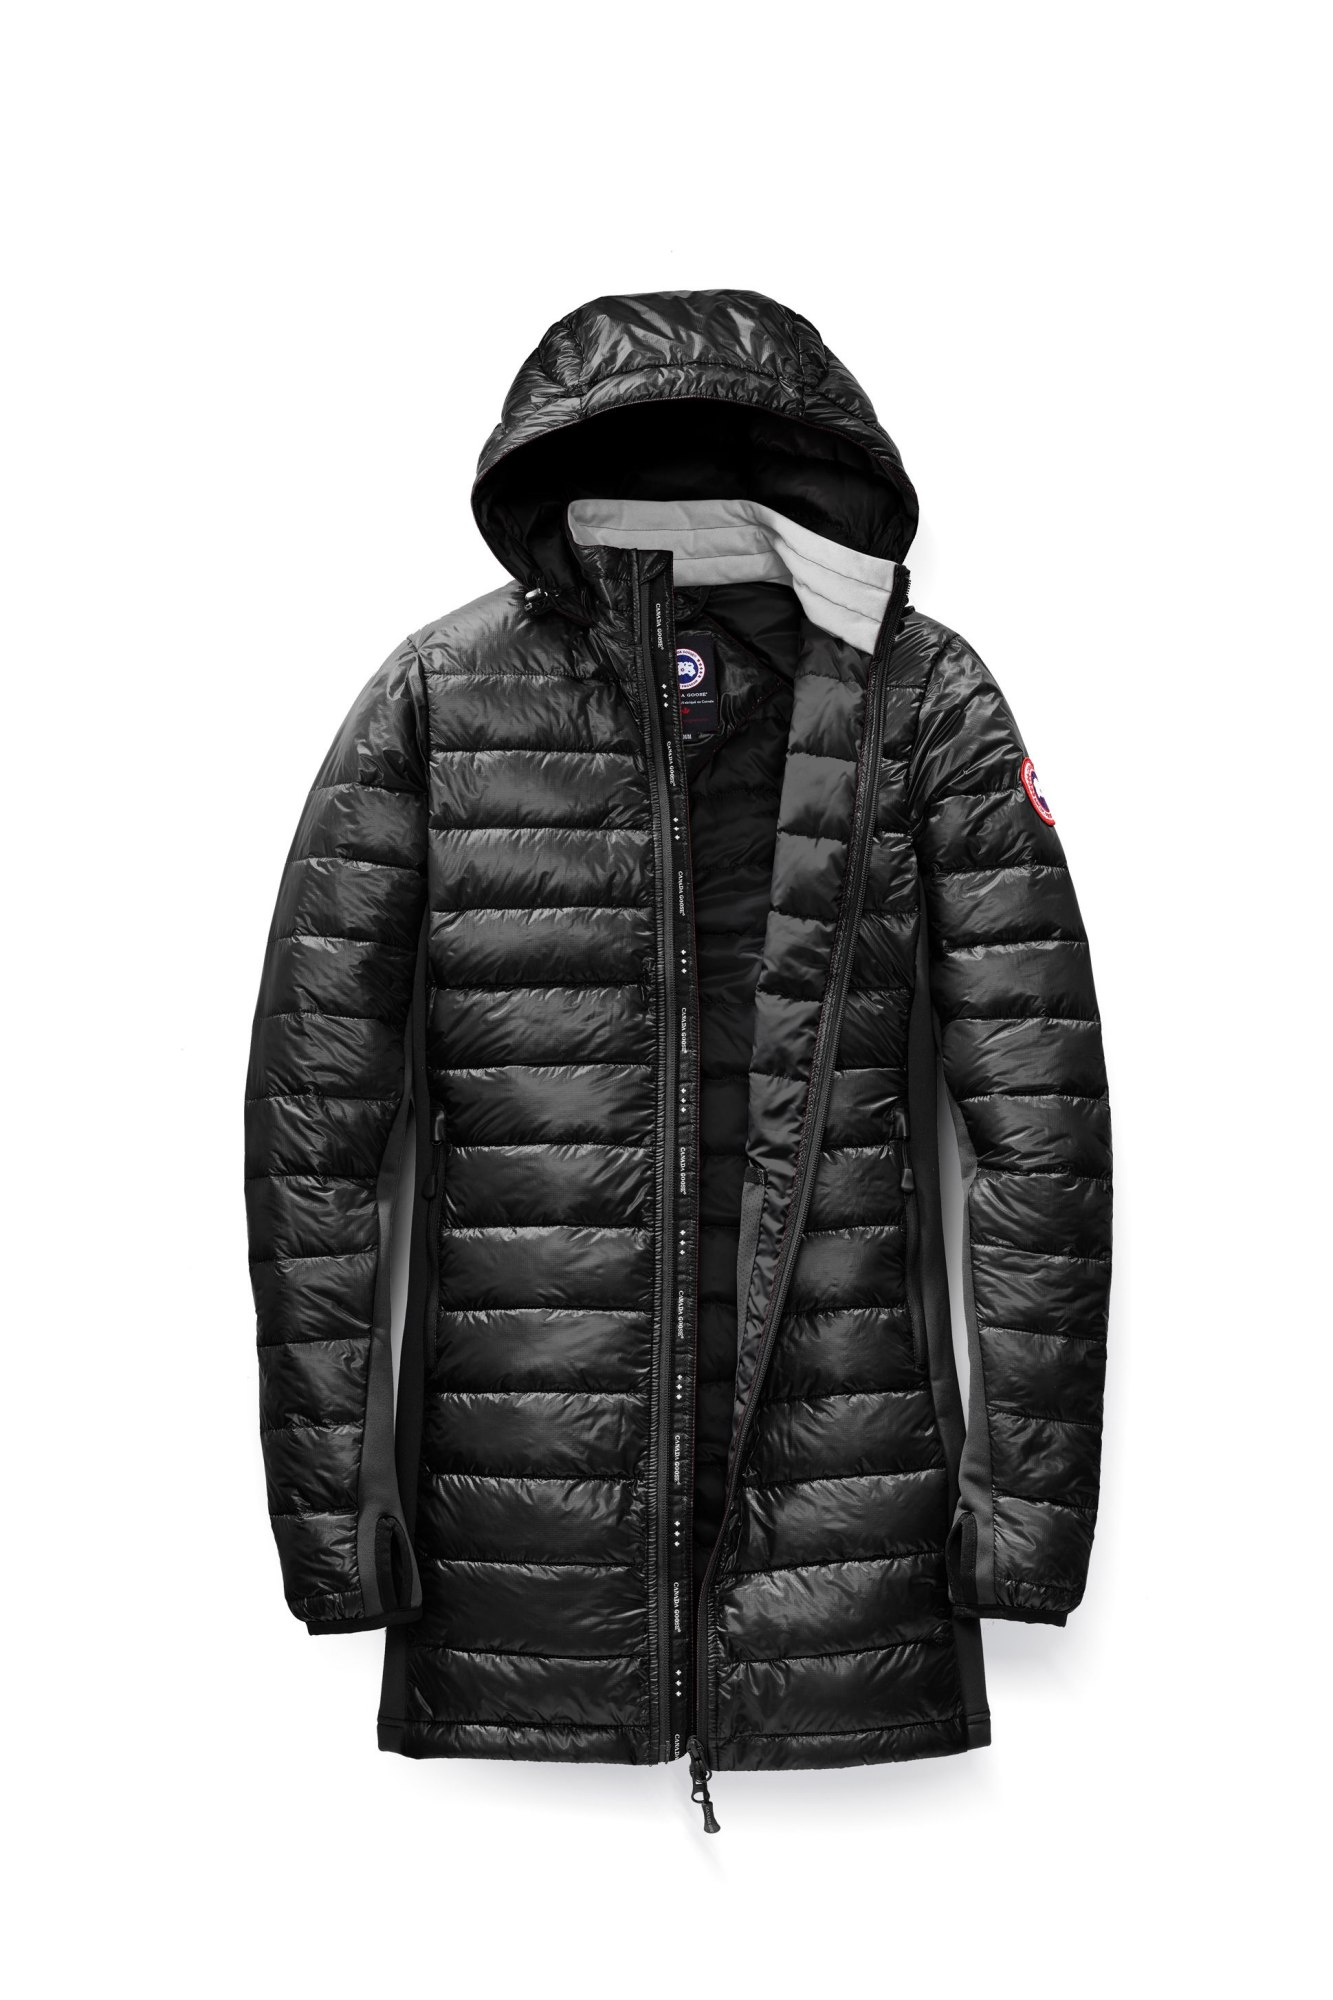 HyBridge Lite Coat | Canada Goose® - photo#40